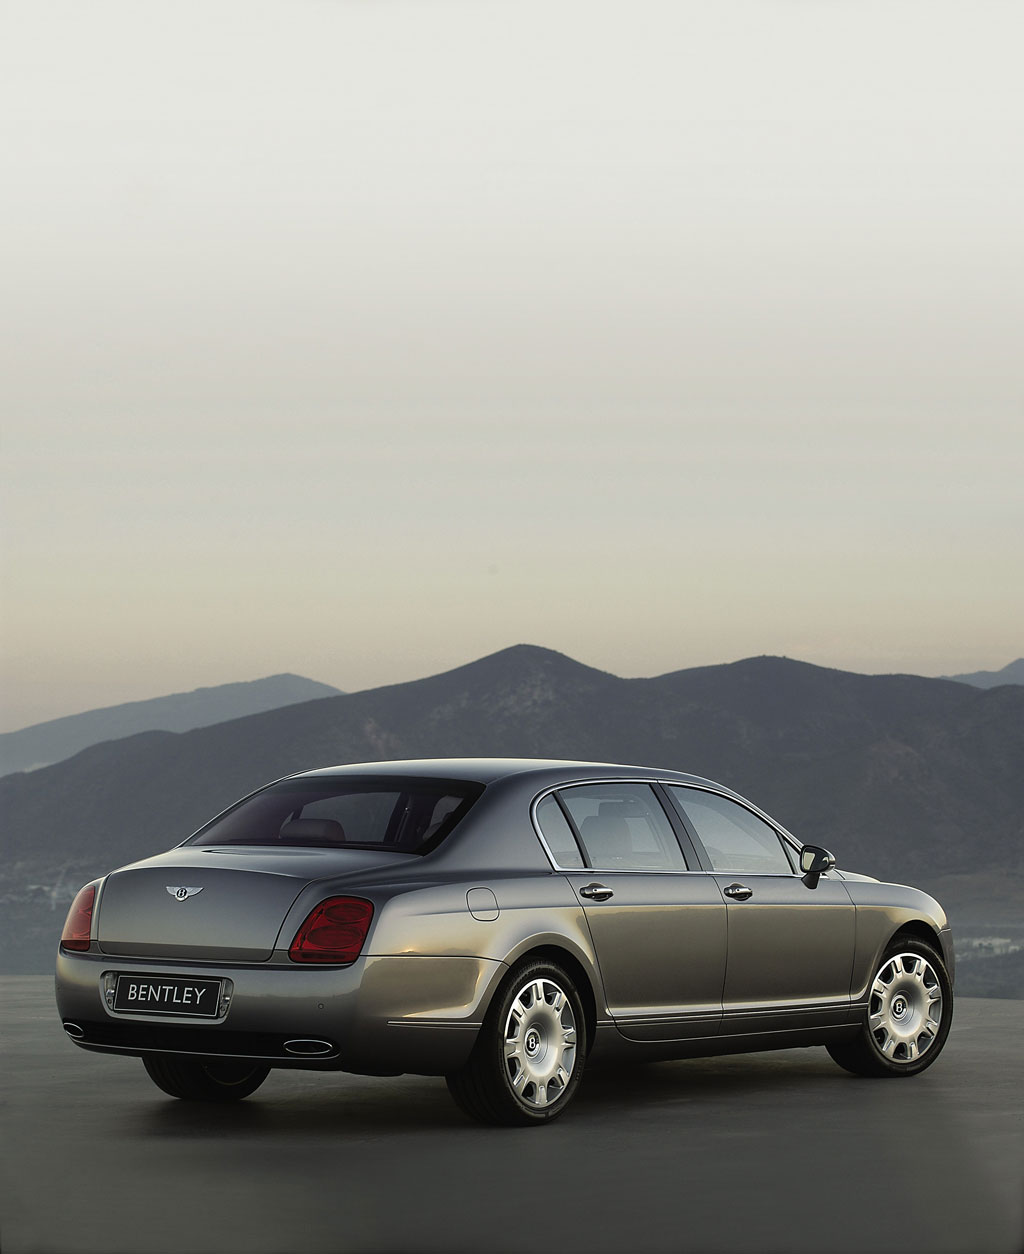 2009 Bentley Flying Spur Wallpaper And Image Gallery